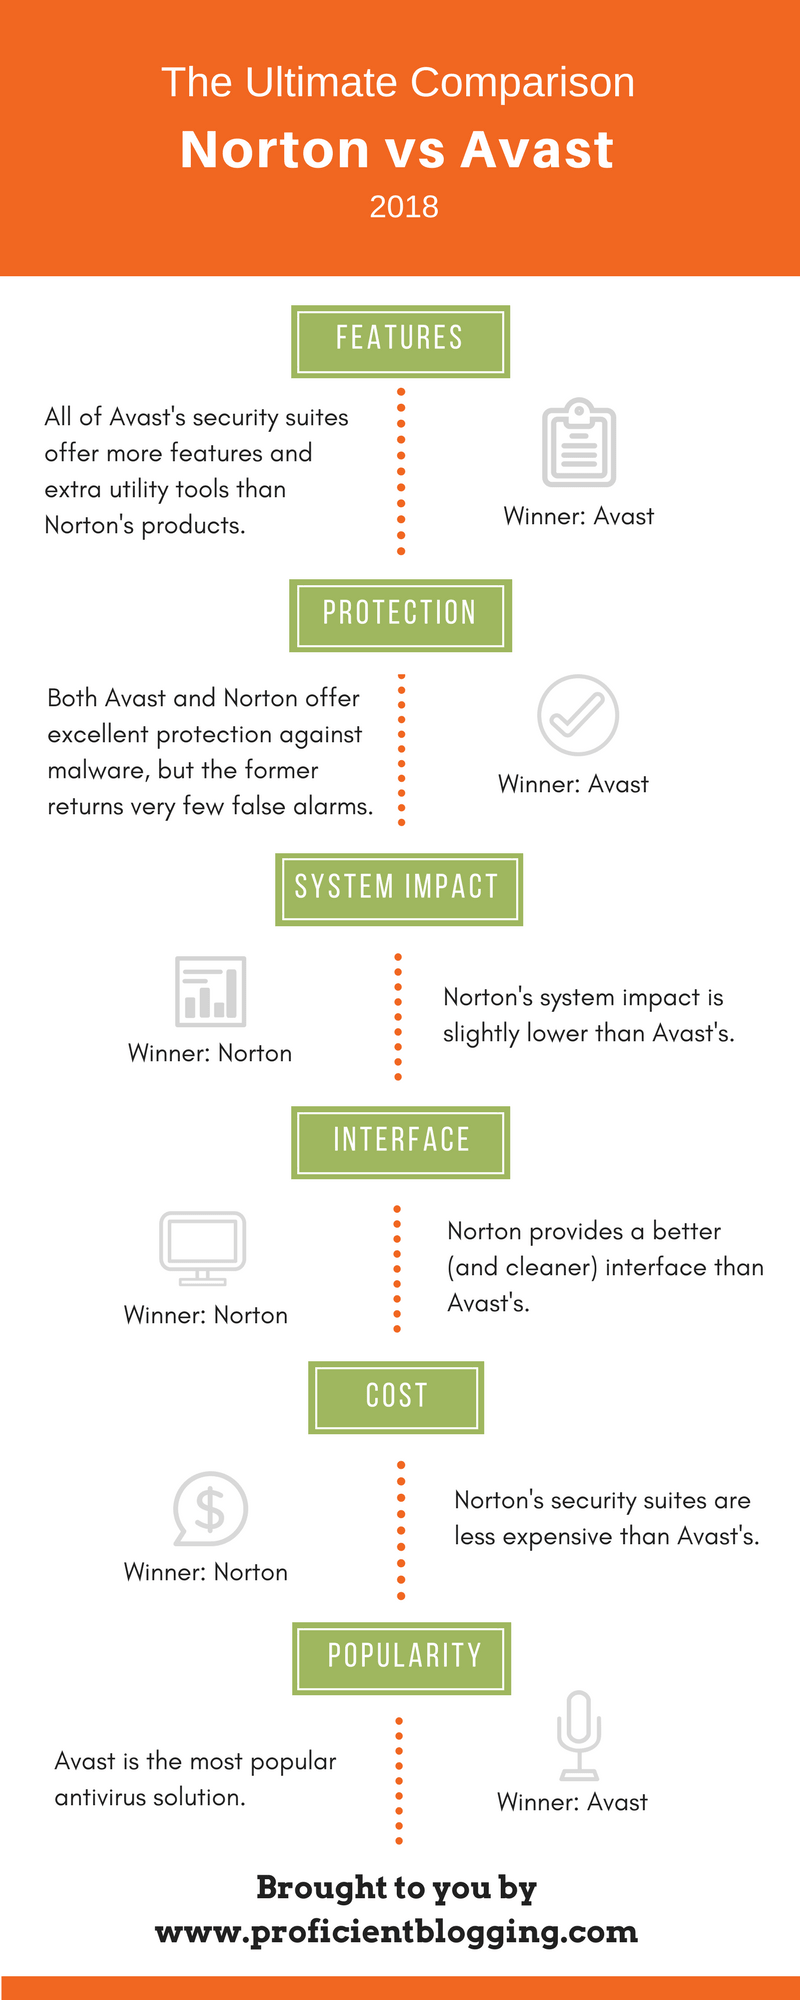 Norton vs. Avast Comparison Infographic